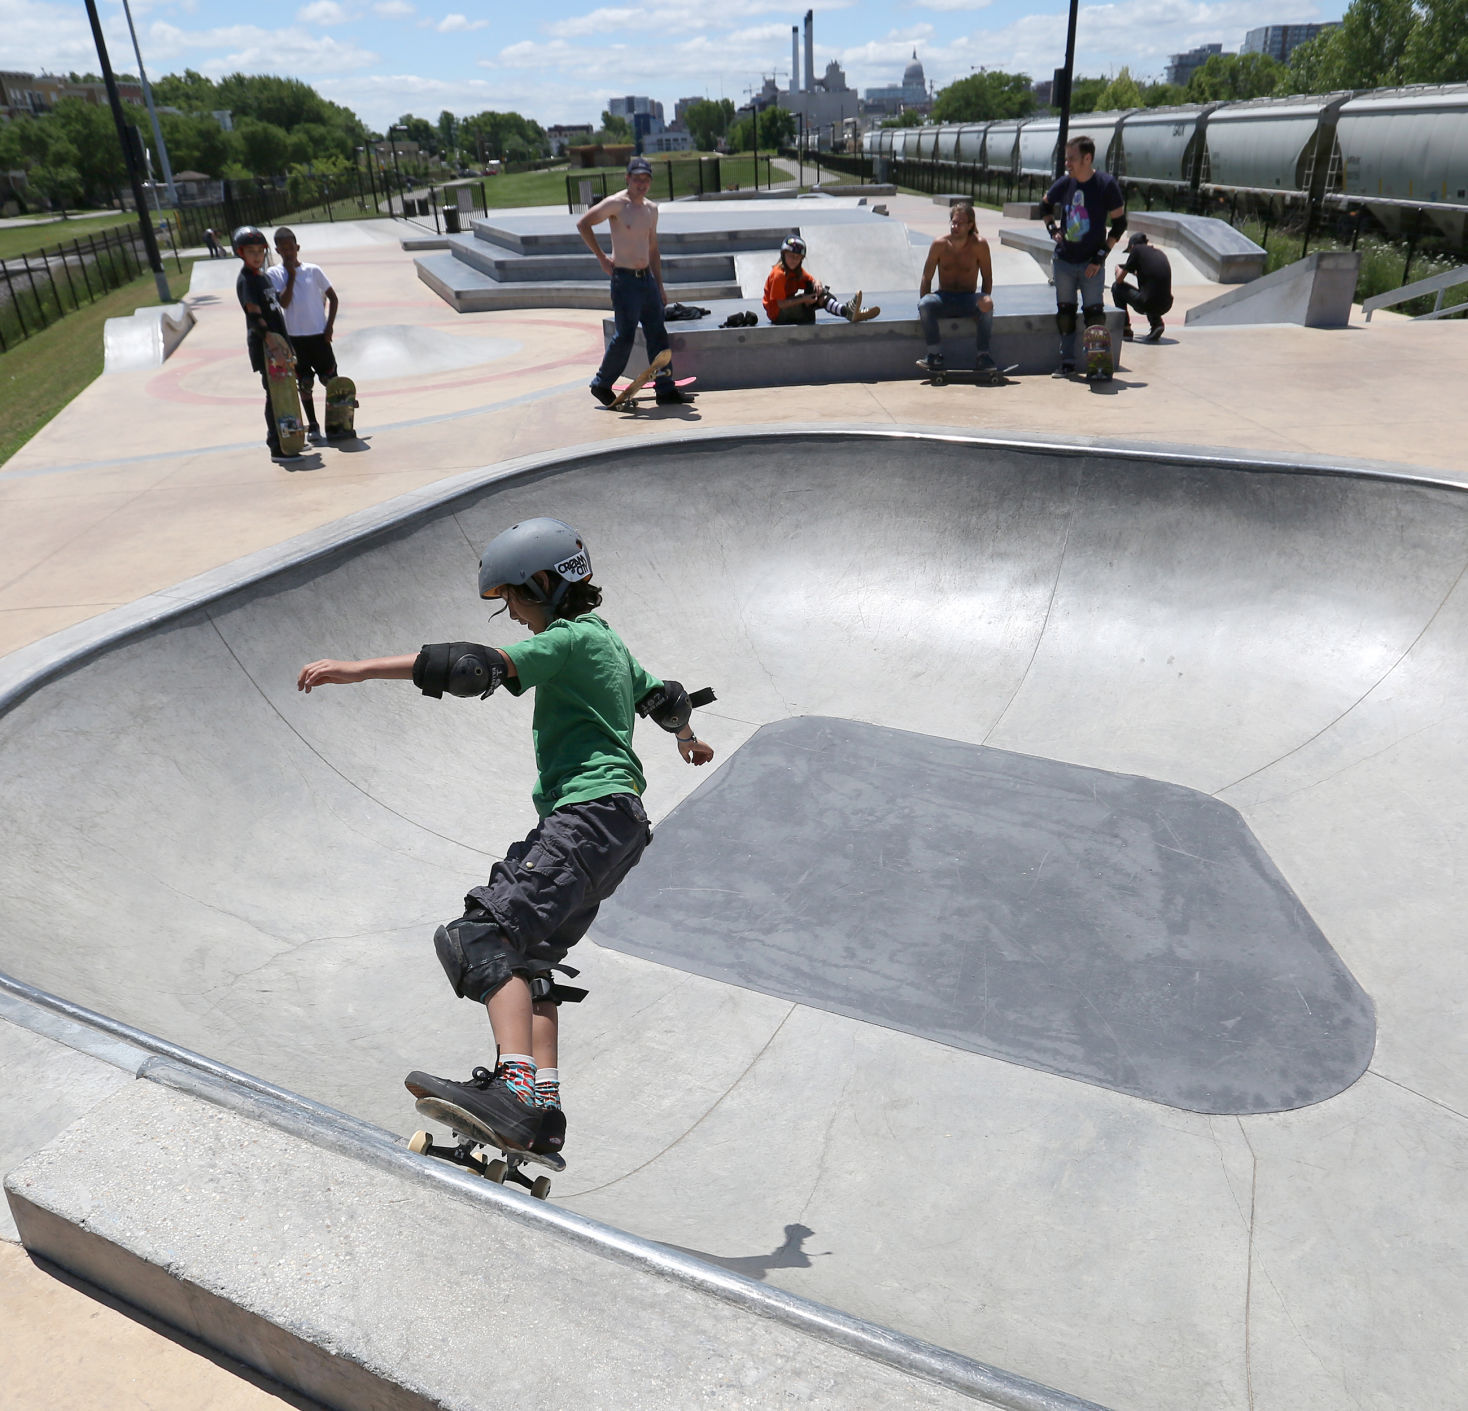 Handson Kweekkas Serre Photos Shredding At The Goodman Skatepark Local News Madison